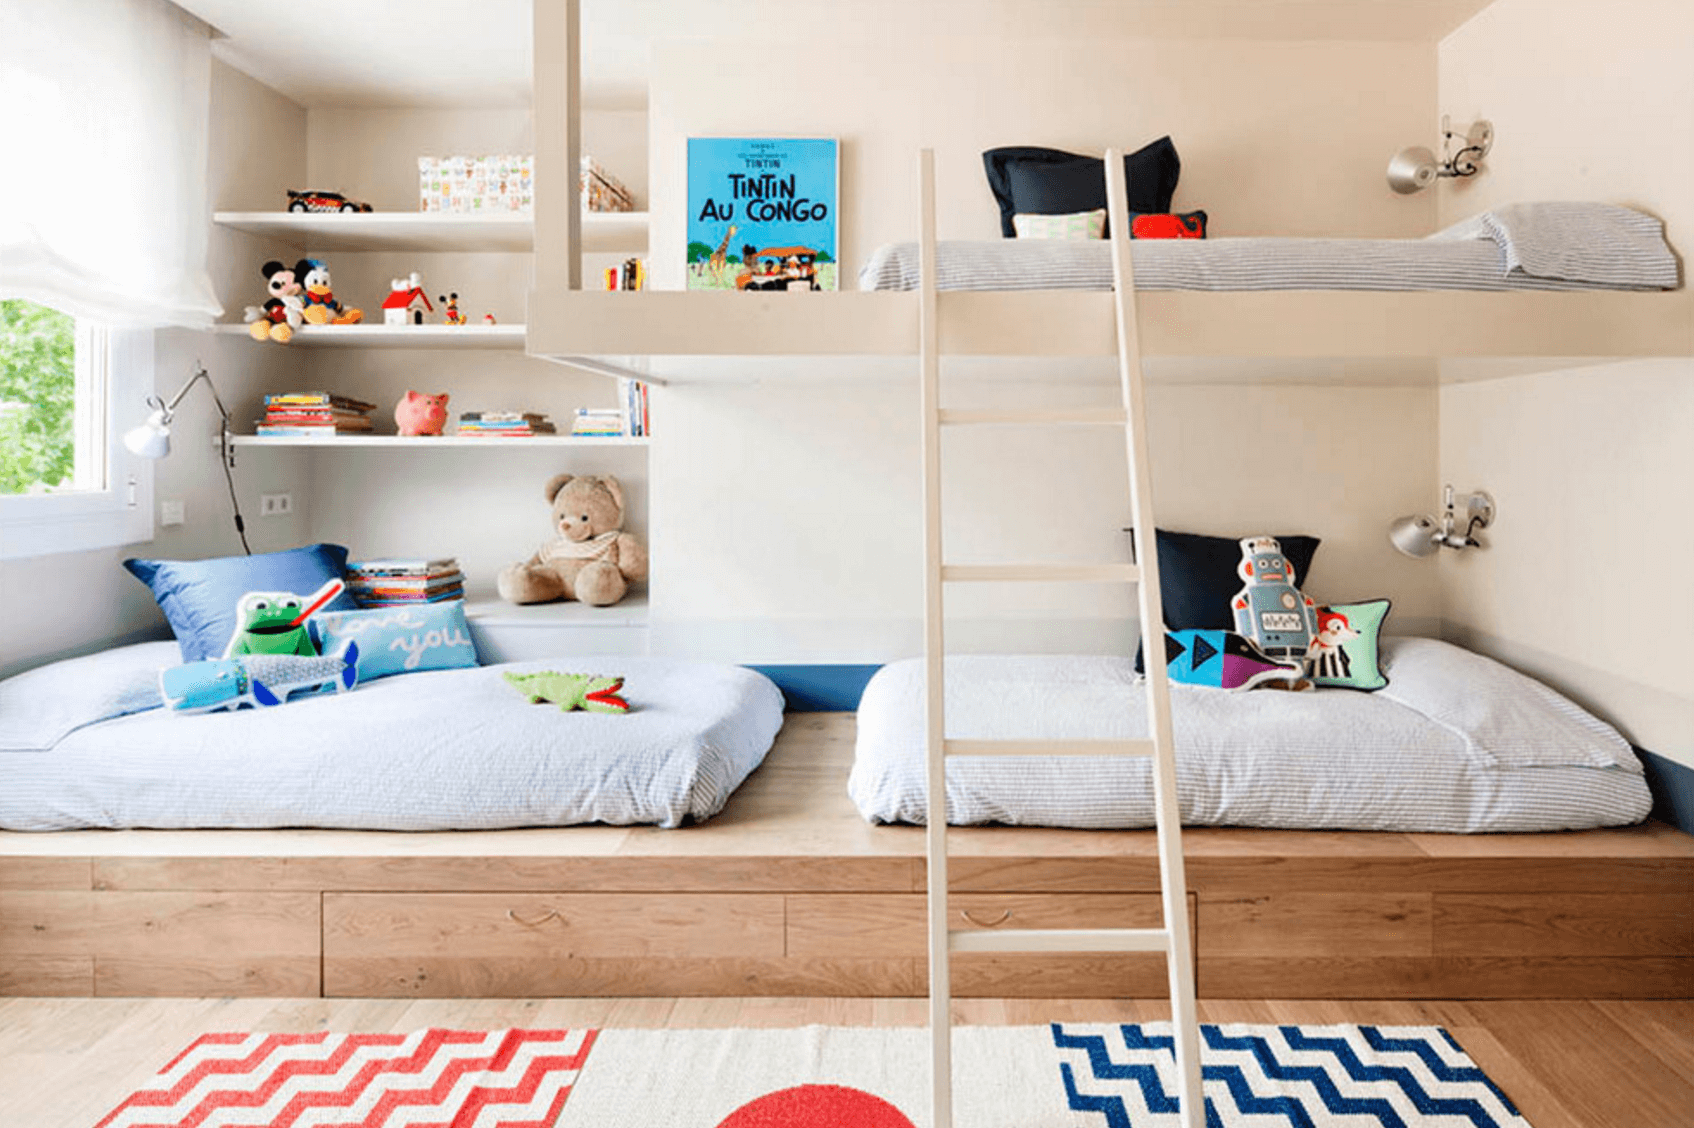 creative shared bedroom ideas for a modern kids' room (fres home, Schlafzimmer entwurf